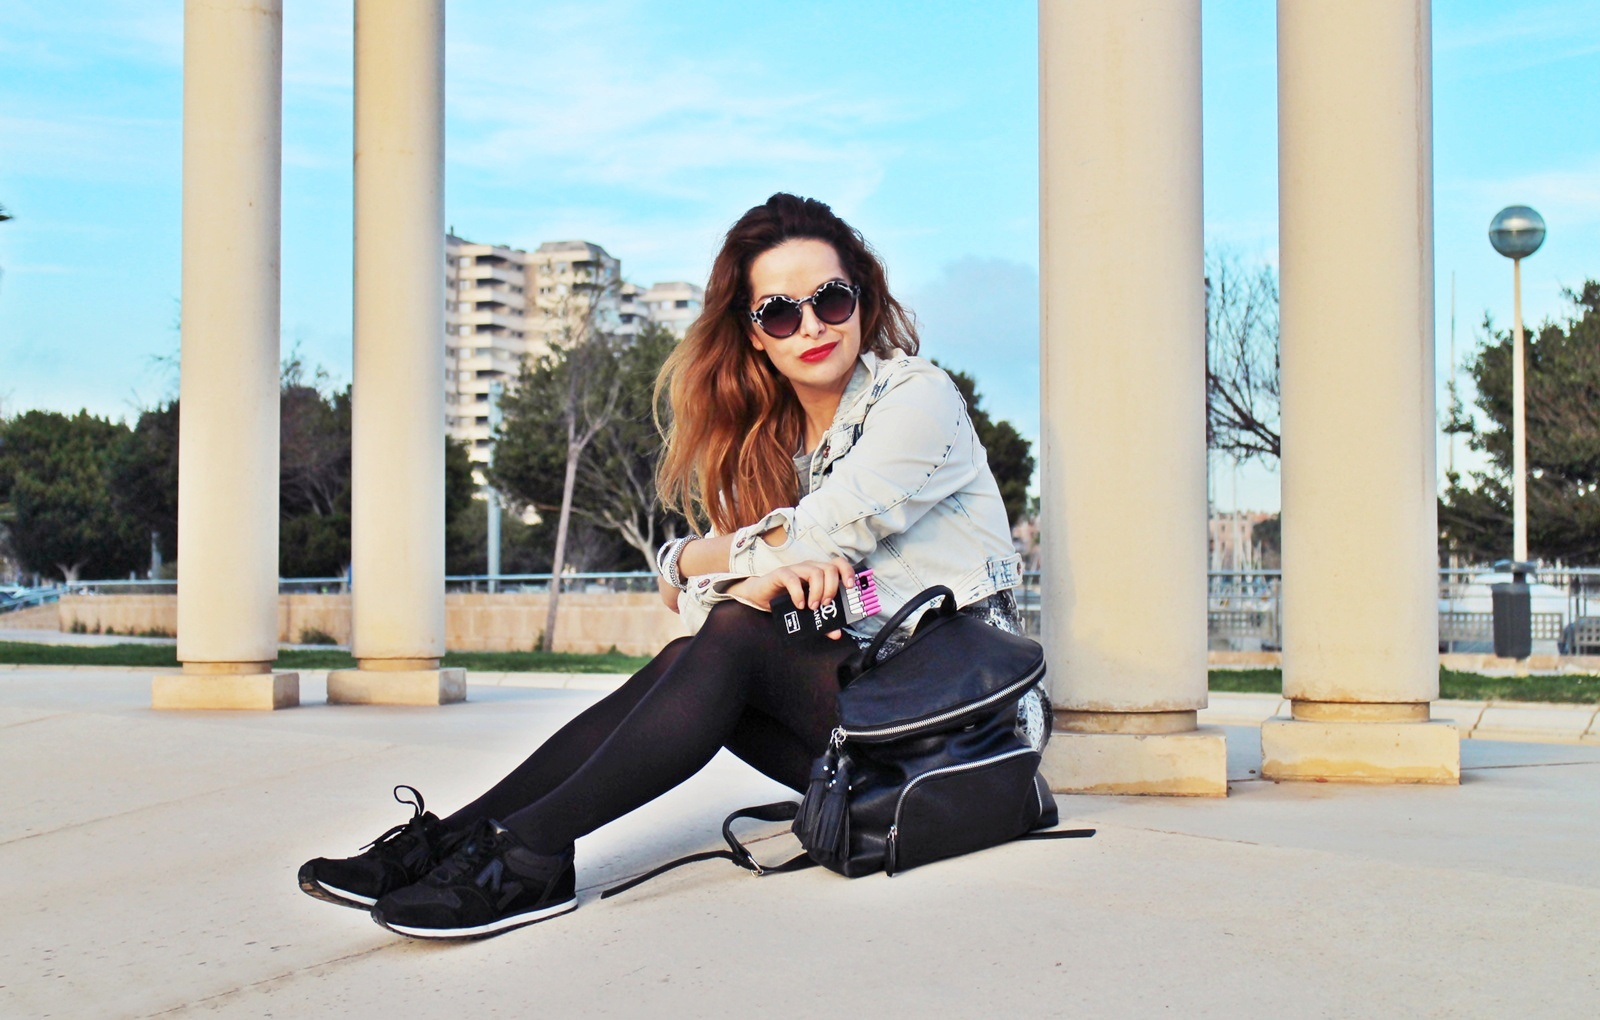 blog aurora vega, cenicienta no lleva zapatos, personal shopper mallorca, blog mallorca, street style mallorca, fashion blogger mallorca, sneakers, look casual, igersmallorcafashion